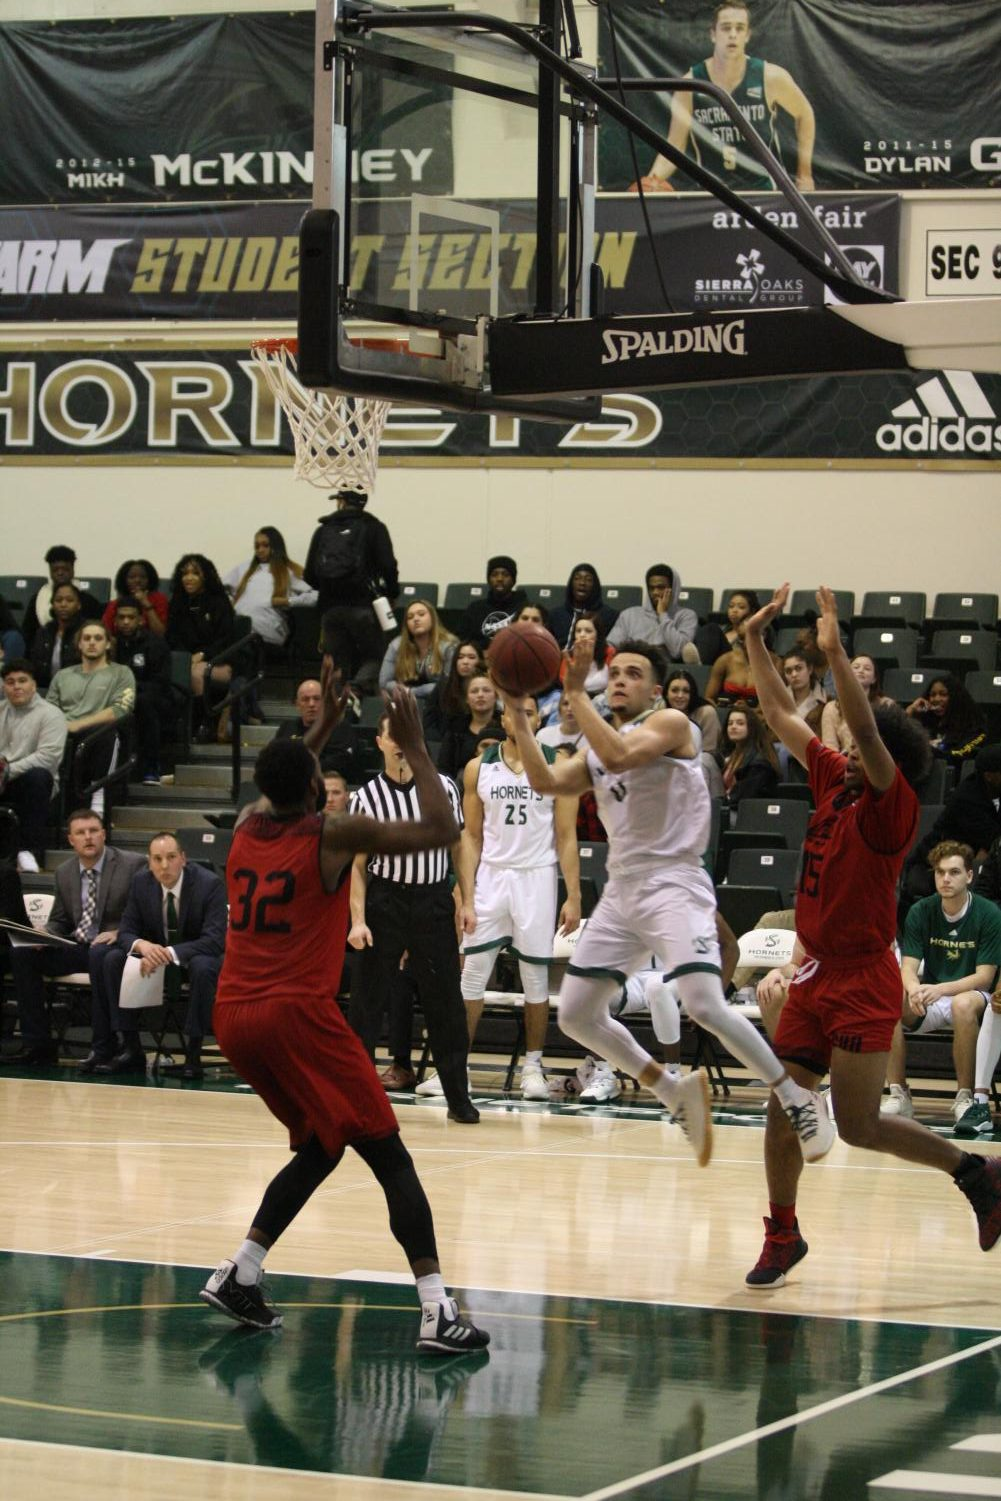 Sac State senior guard Marcus Graves shoots during the Hornets 84-73 win over Southern Utah on Thursday.